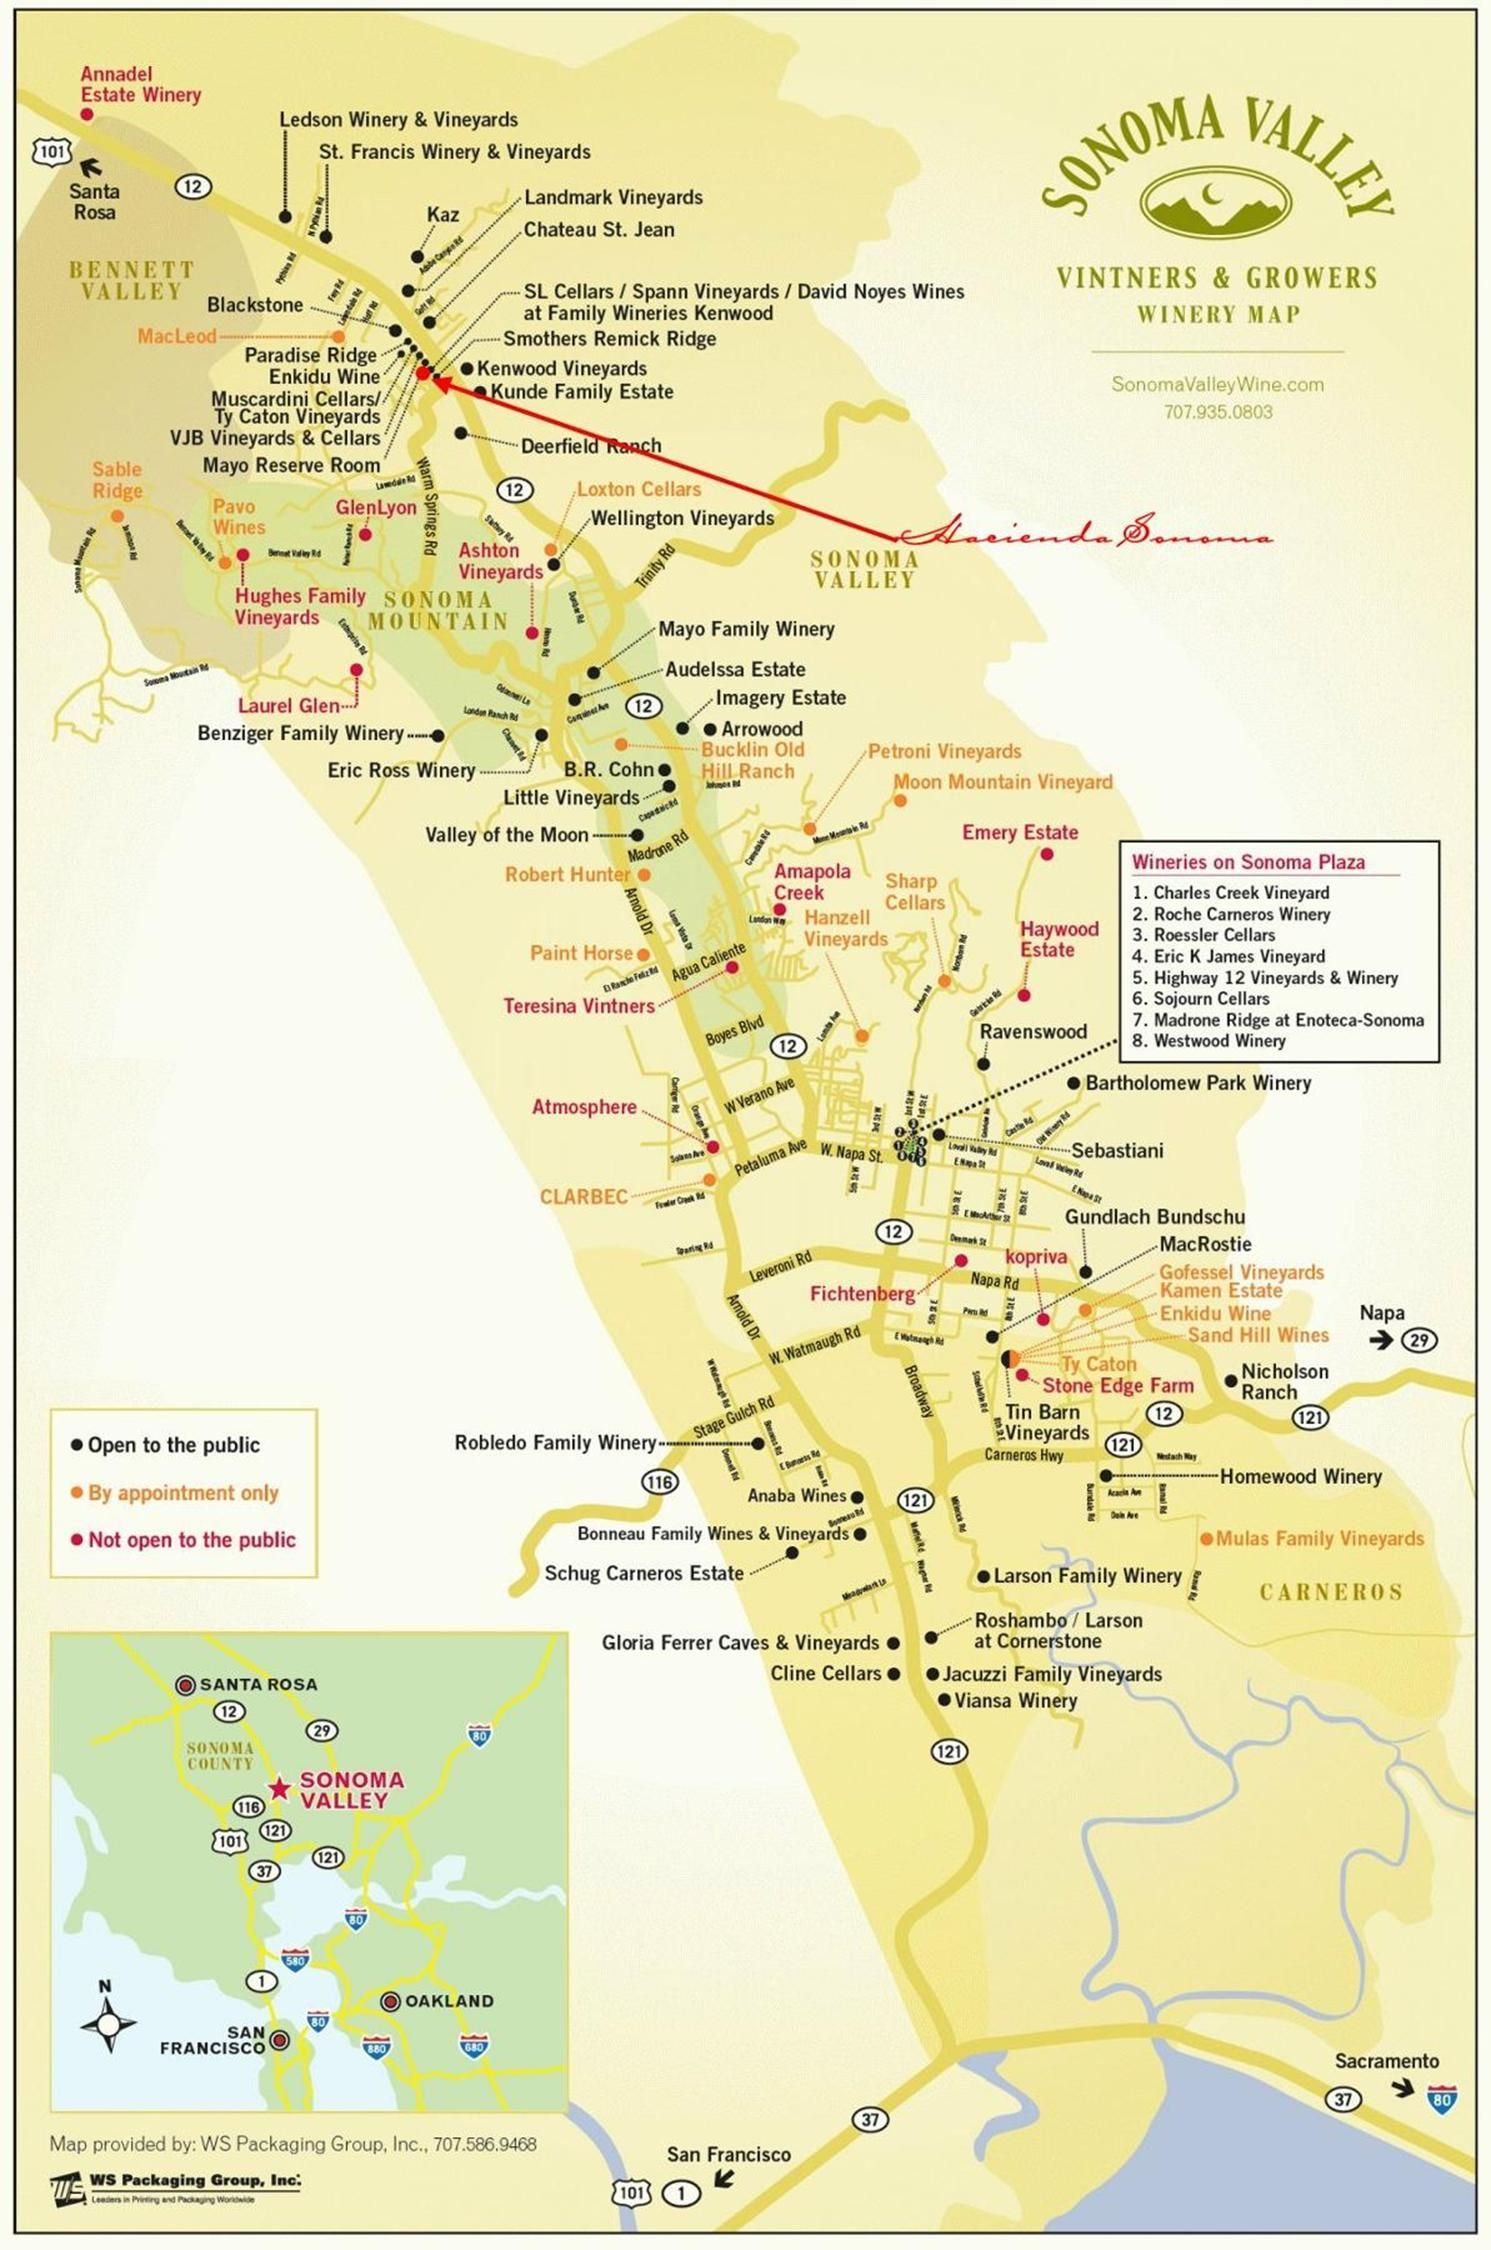 Sonoma Valley Wineries | N A P A | S O N O M A In 2019 | Pinterest - Map Of Wineries In Sonoma County California